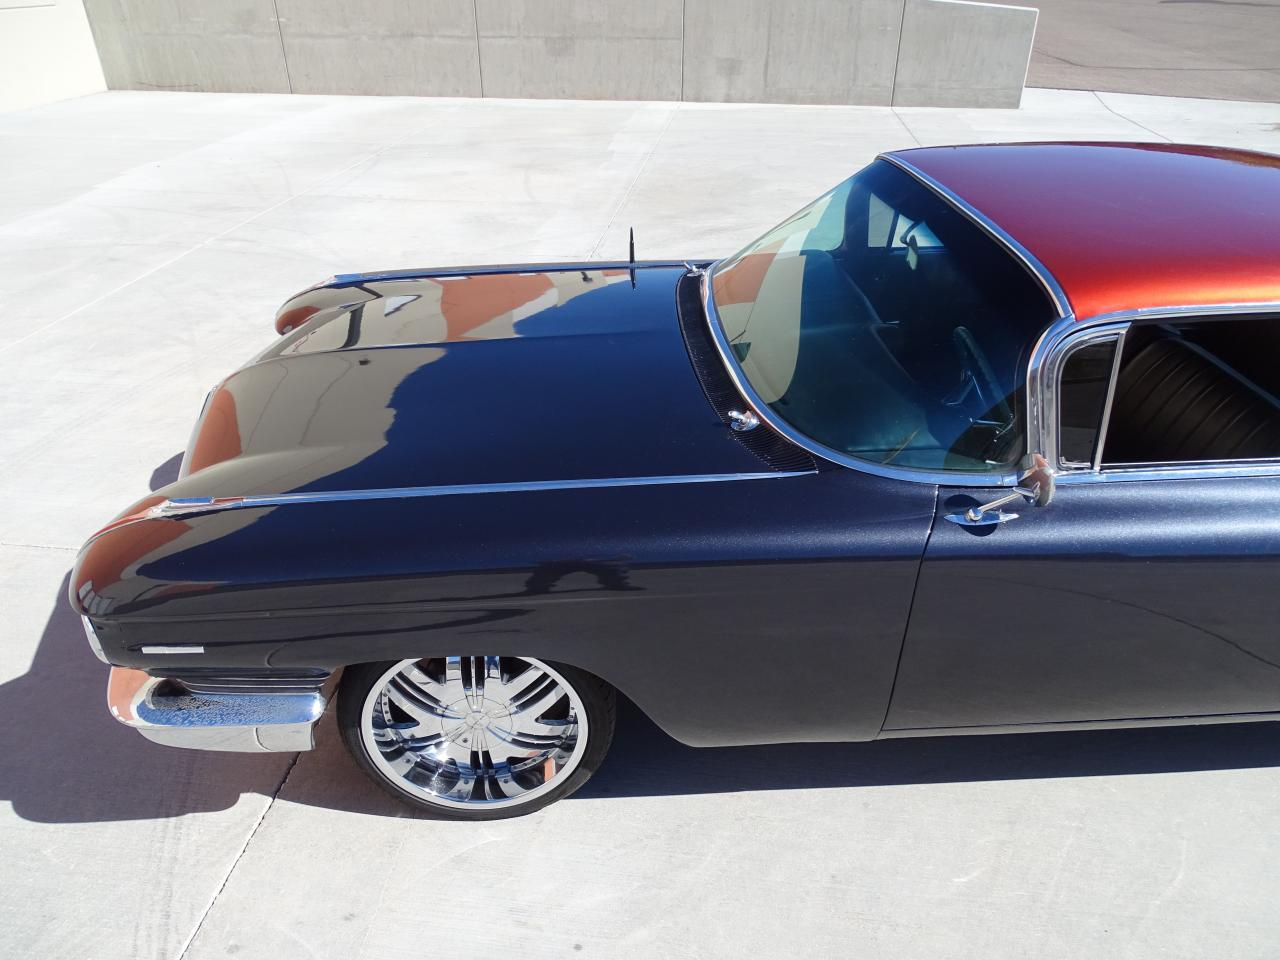 Large Picture of 1960 Cadillac Series 62 - $51,000.00 - MZFH